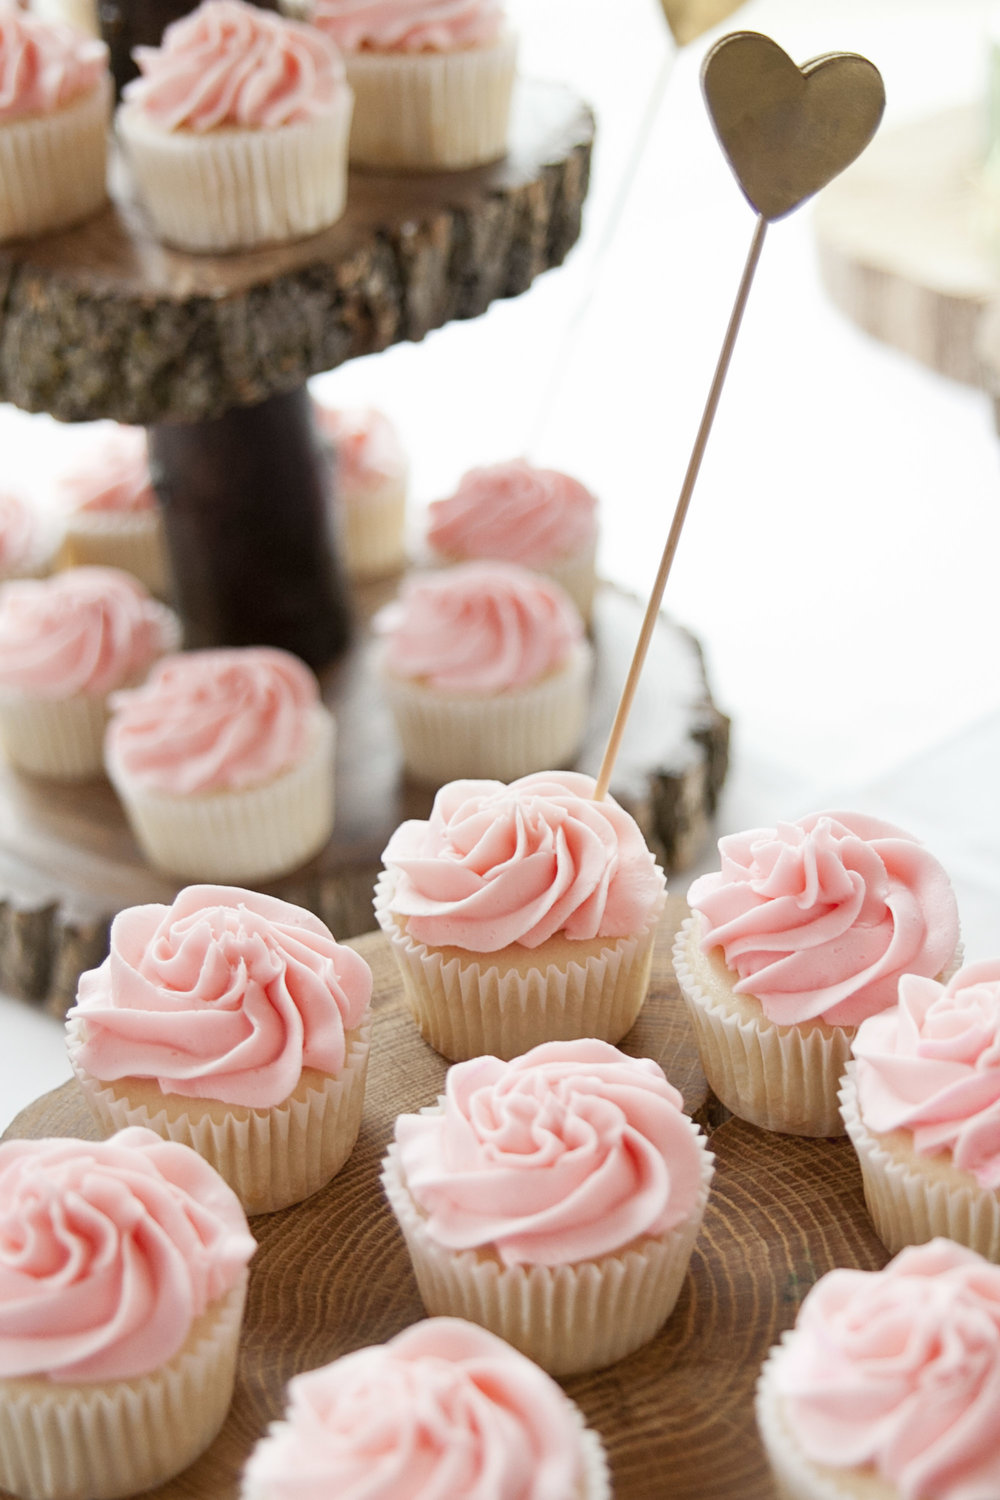 Pink buttercream cupcakes for wedding dessert